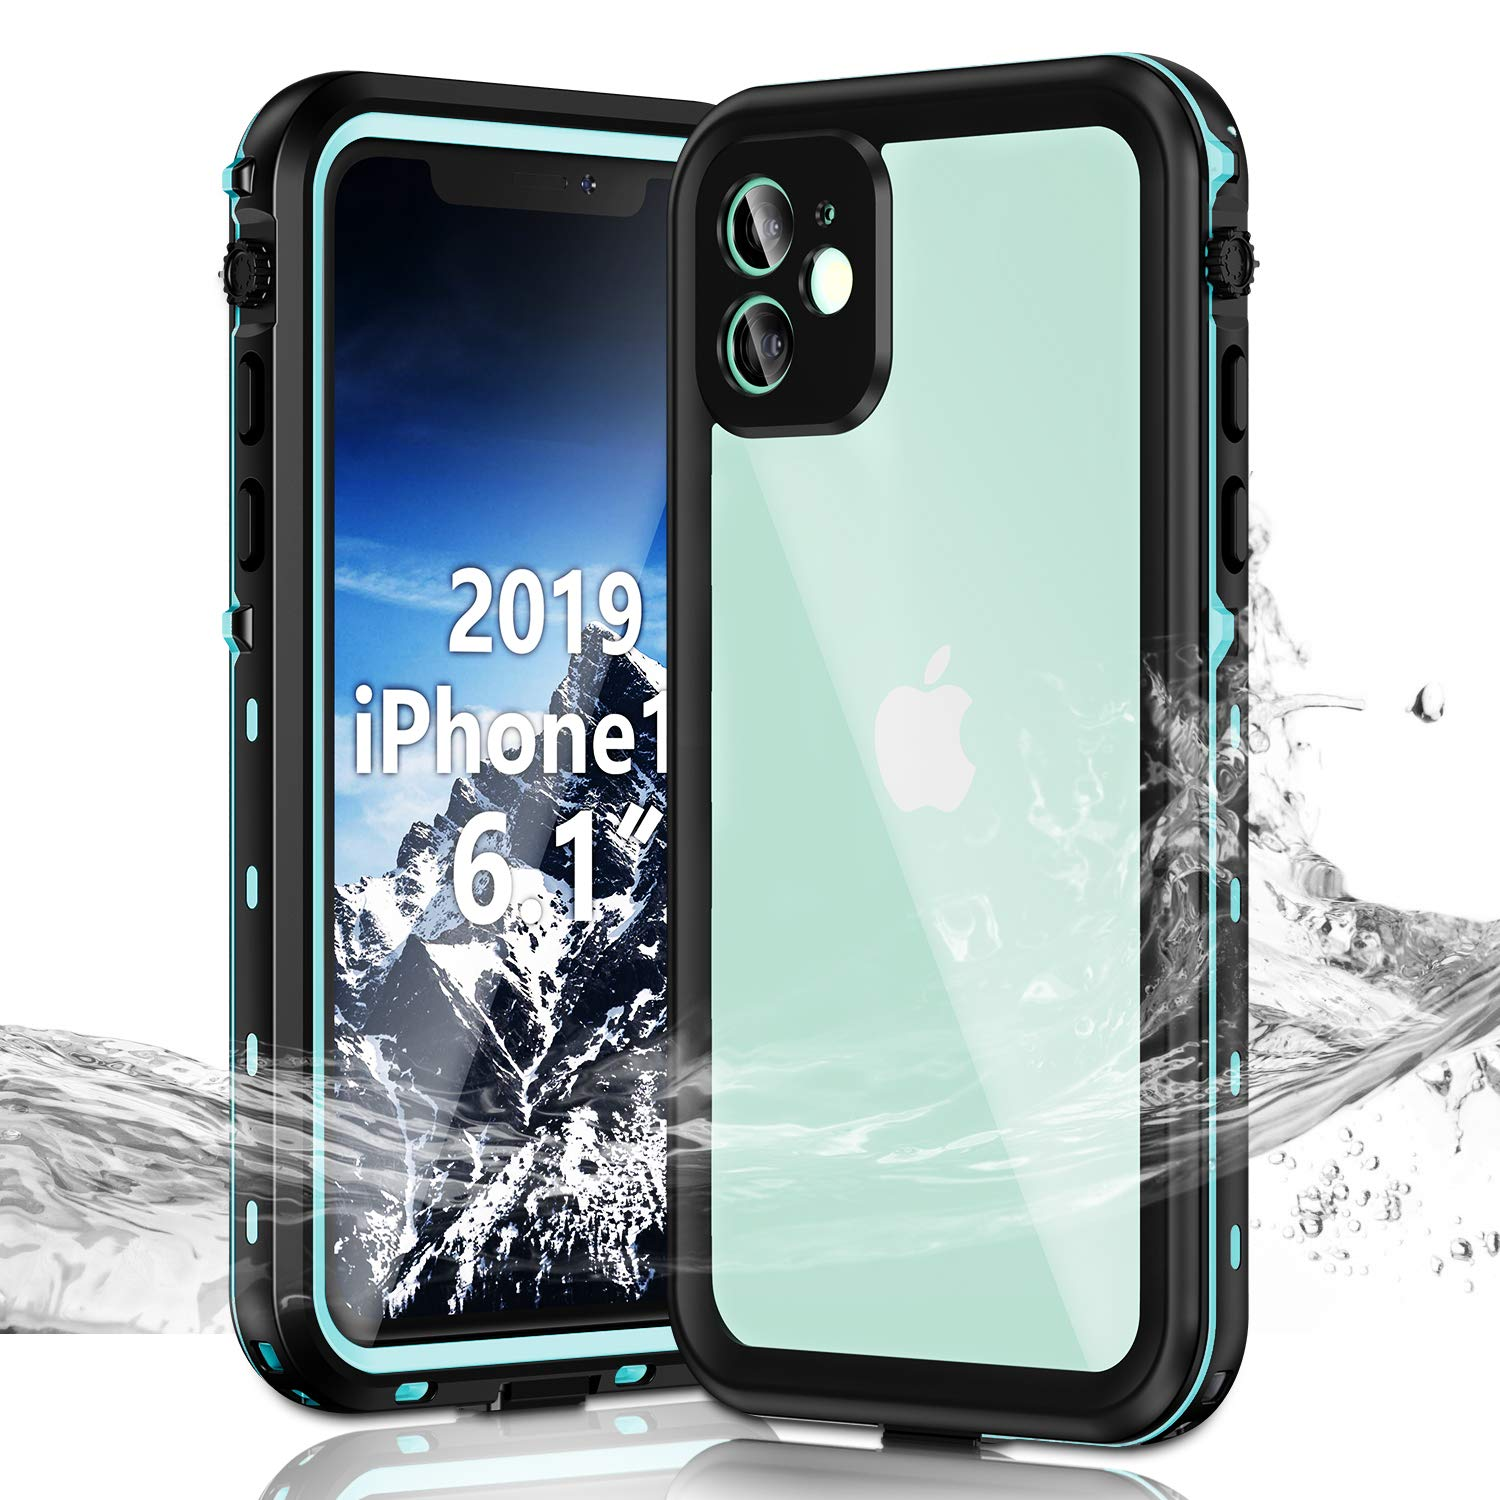 Janazan iPhone 11 Waterproof Case, Full Sealed Underwater Protective Cover, Waterproof Shockproof Snowproof Dirtproof with Built-in Screen Protector for iPhone 11 6.1 inch 2019 (Blue)